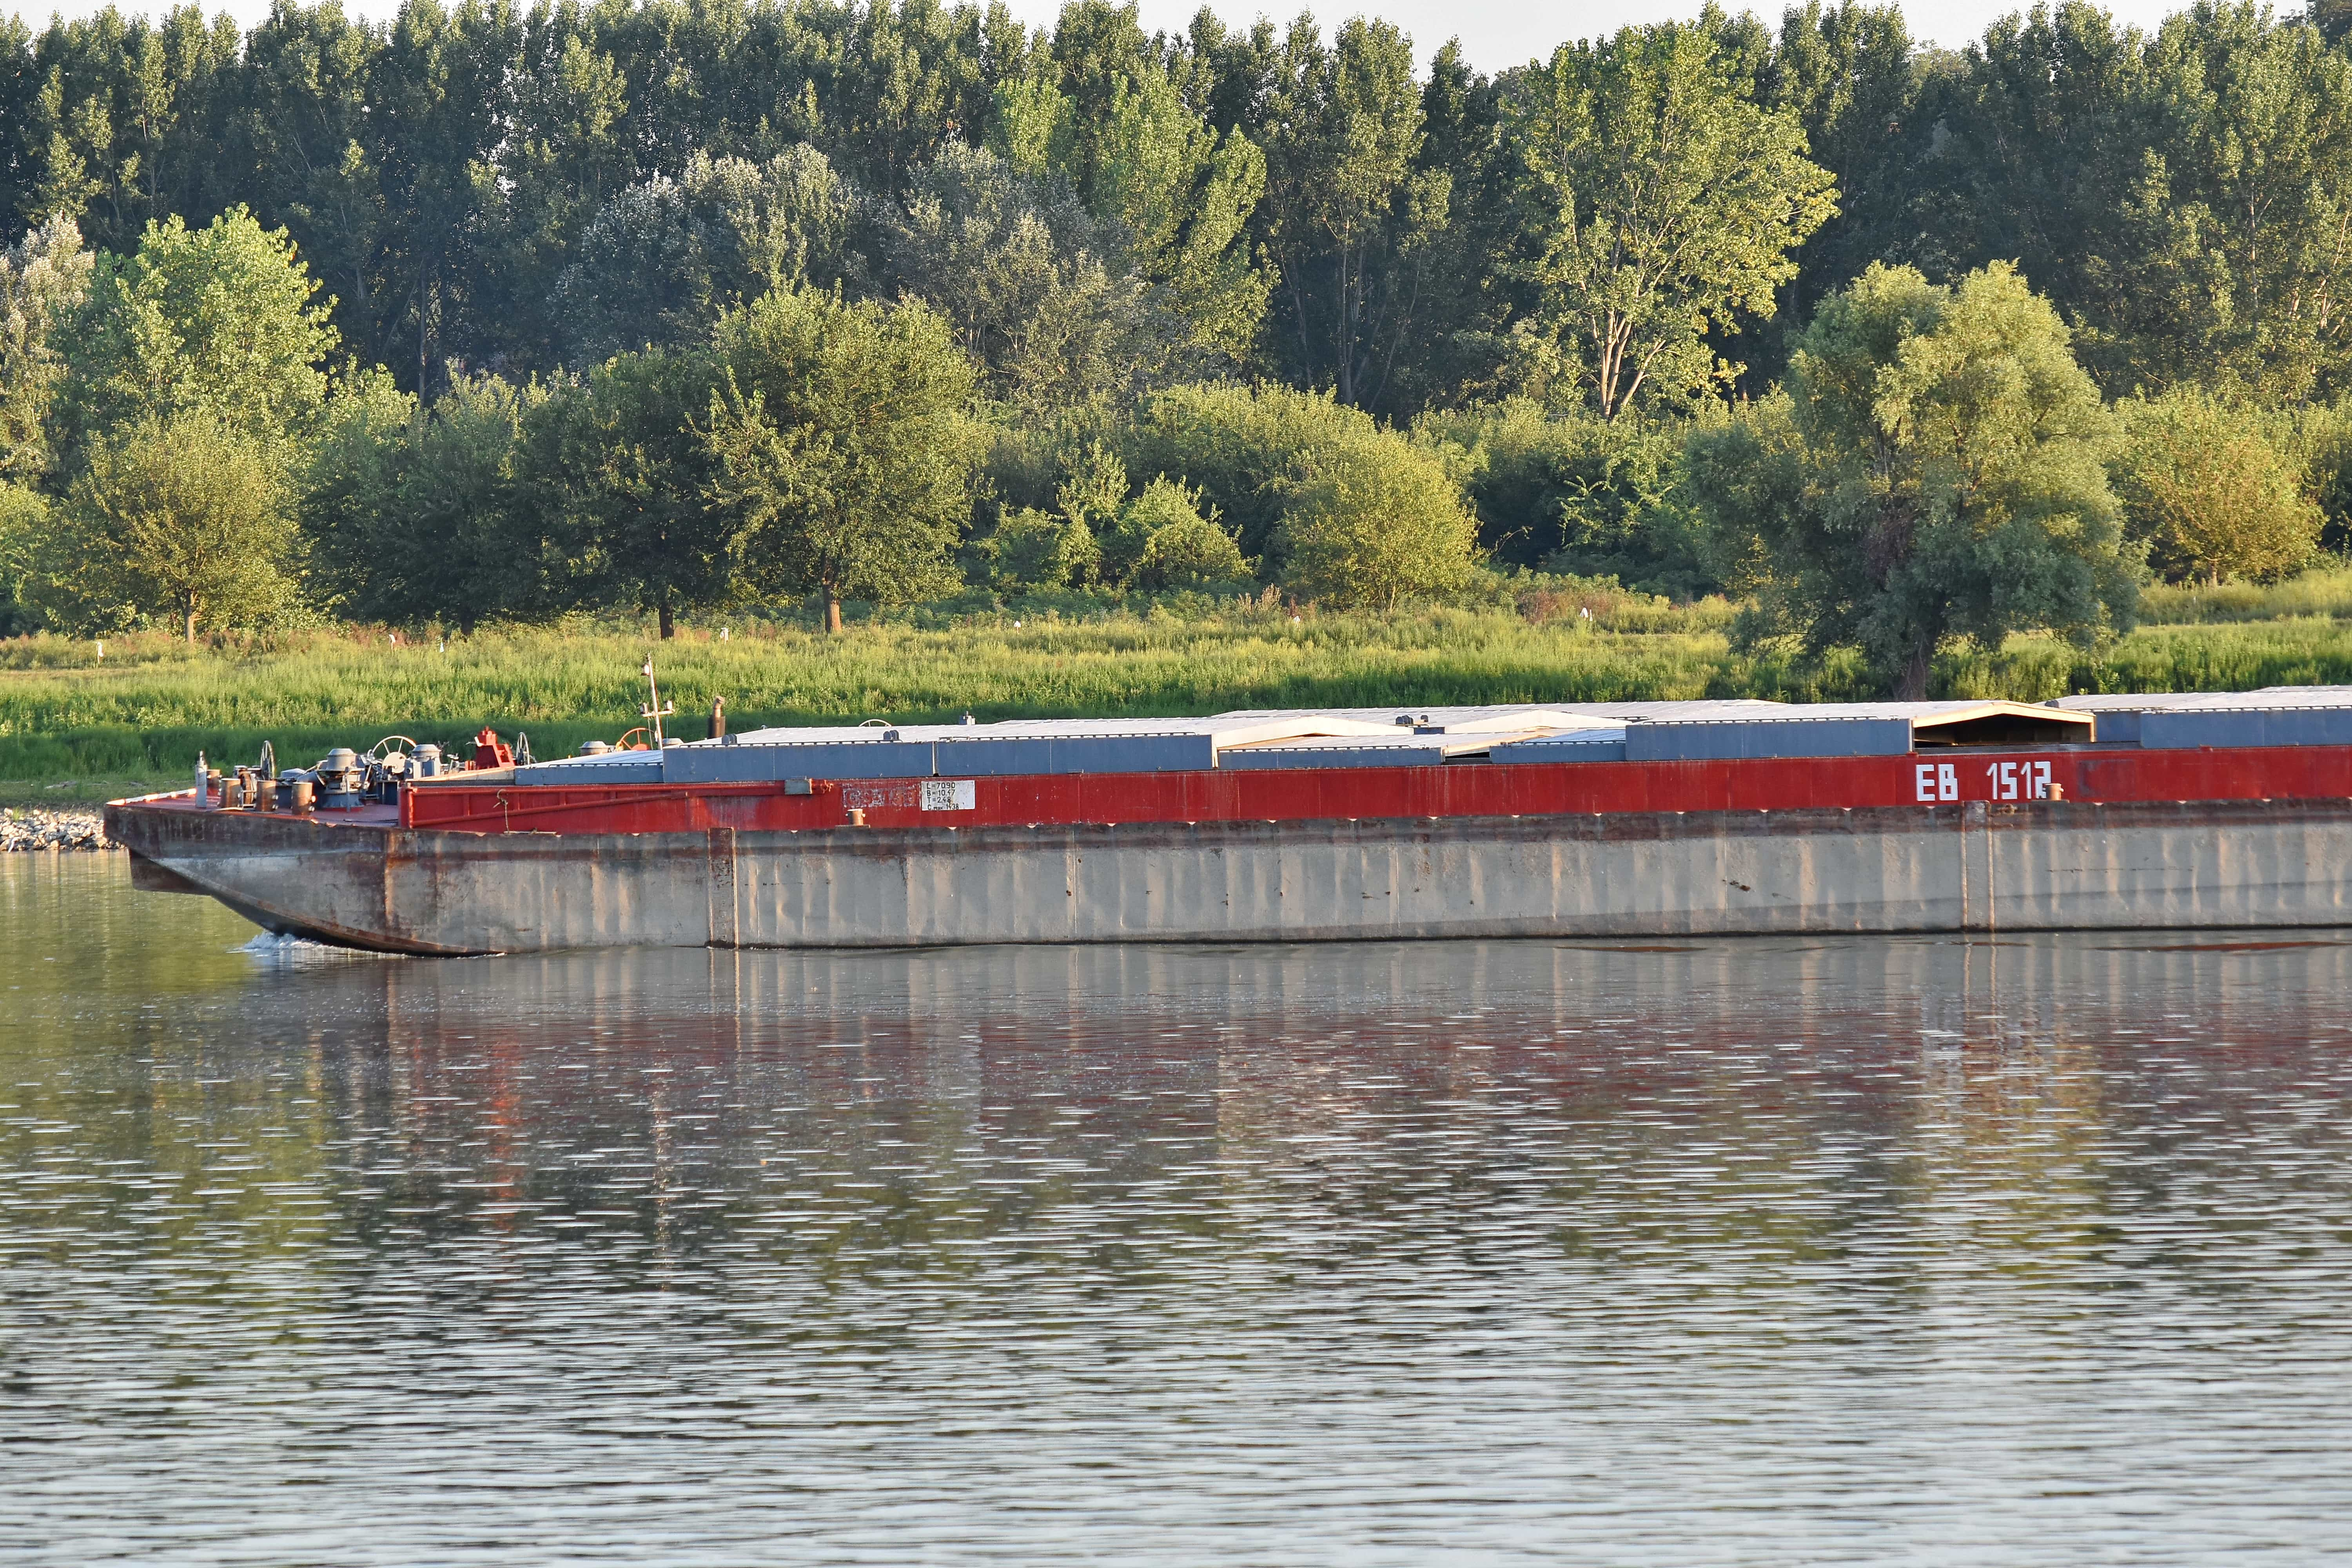 Free picture: barge, cargo ship, river, riverbank, shipment